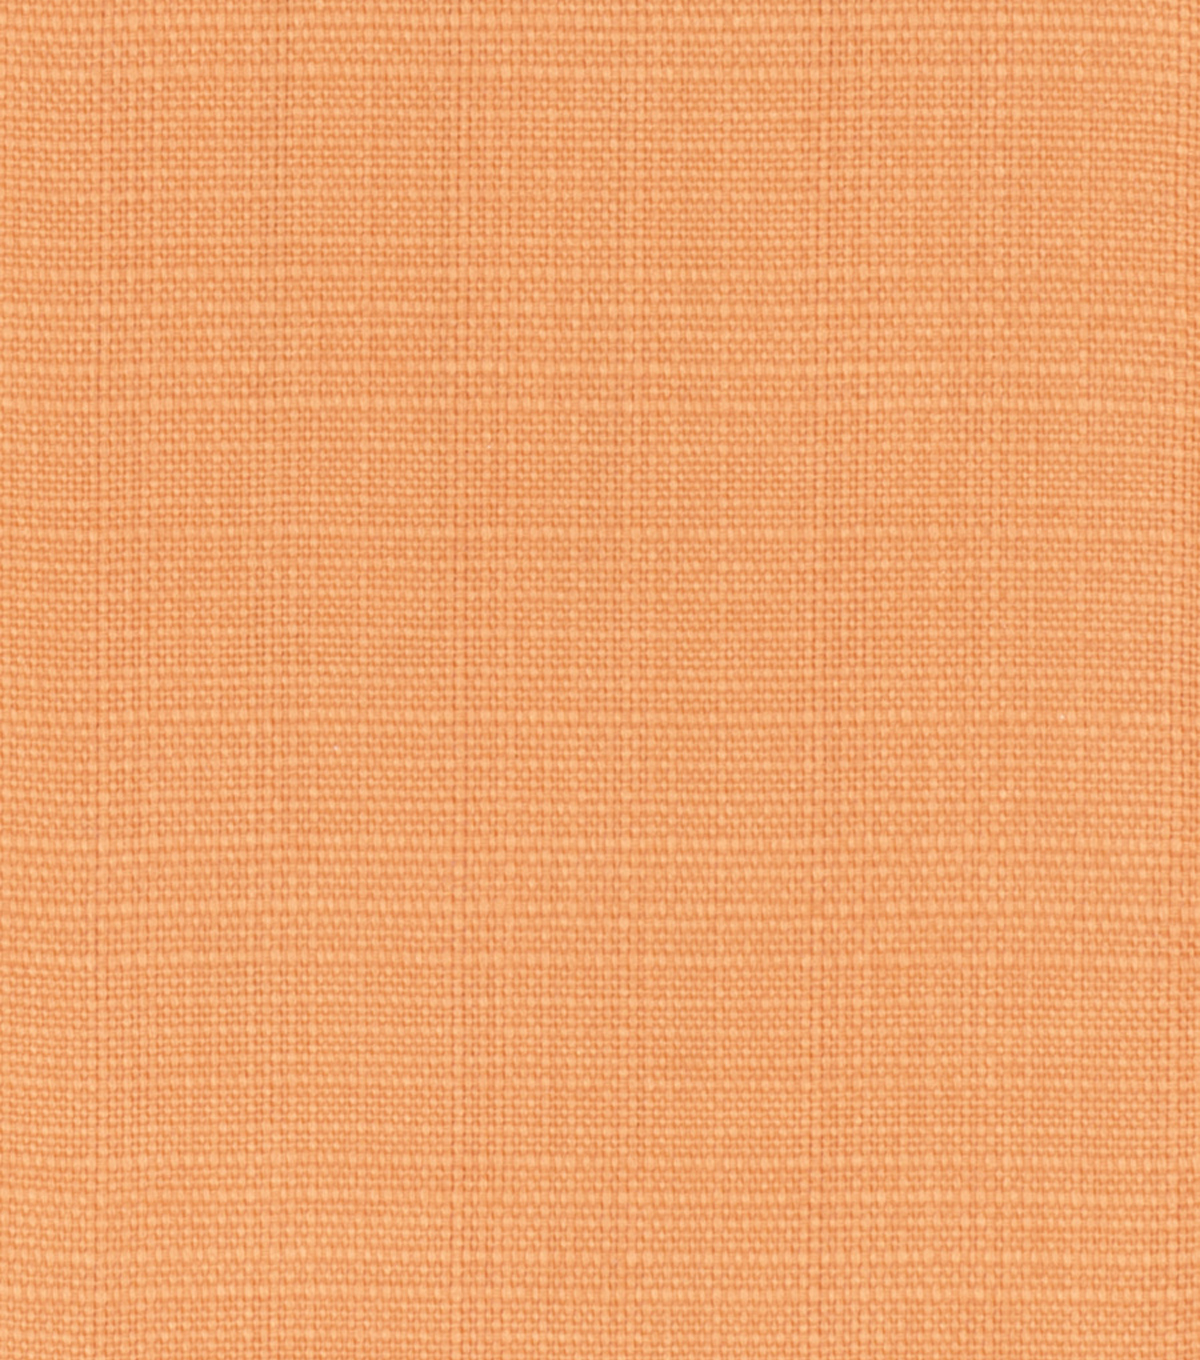 Home Decor 8\u0022x8\u0022 Fabric Swatch-Eaton Square Parrot Fanta